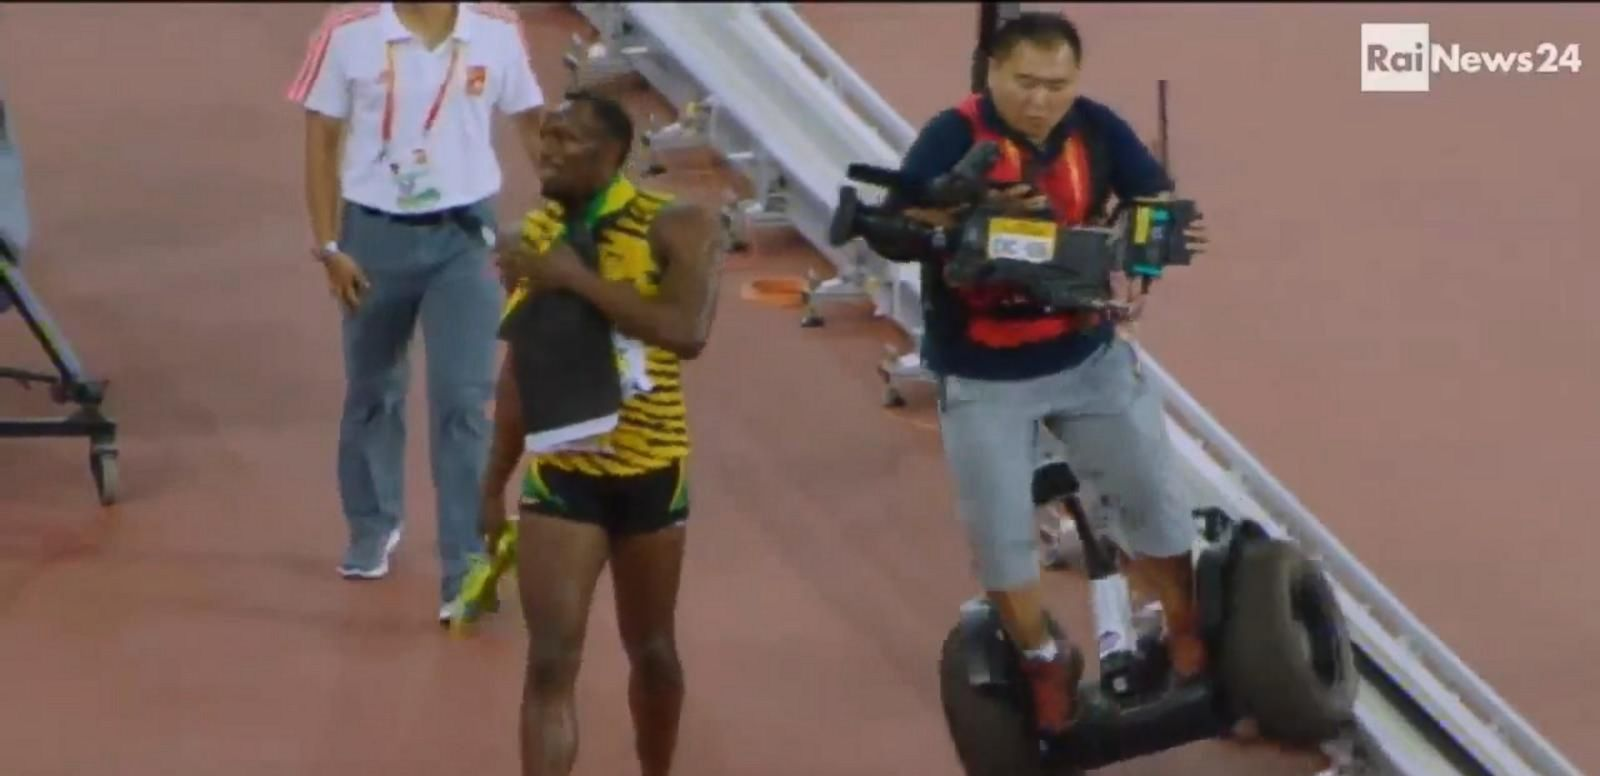 VIDEO: Usain Bolt on Segway Tumble: 'I'm A Little Bit Sore, But I'm Okay'